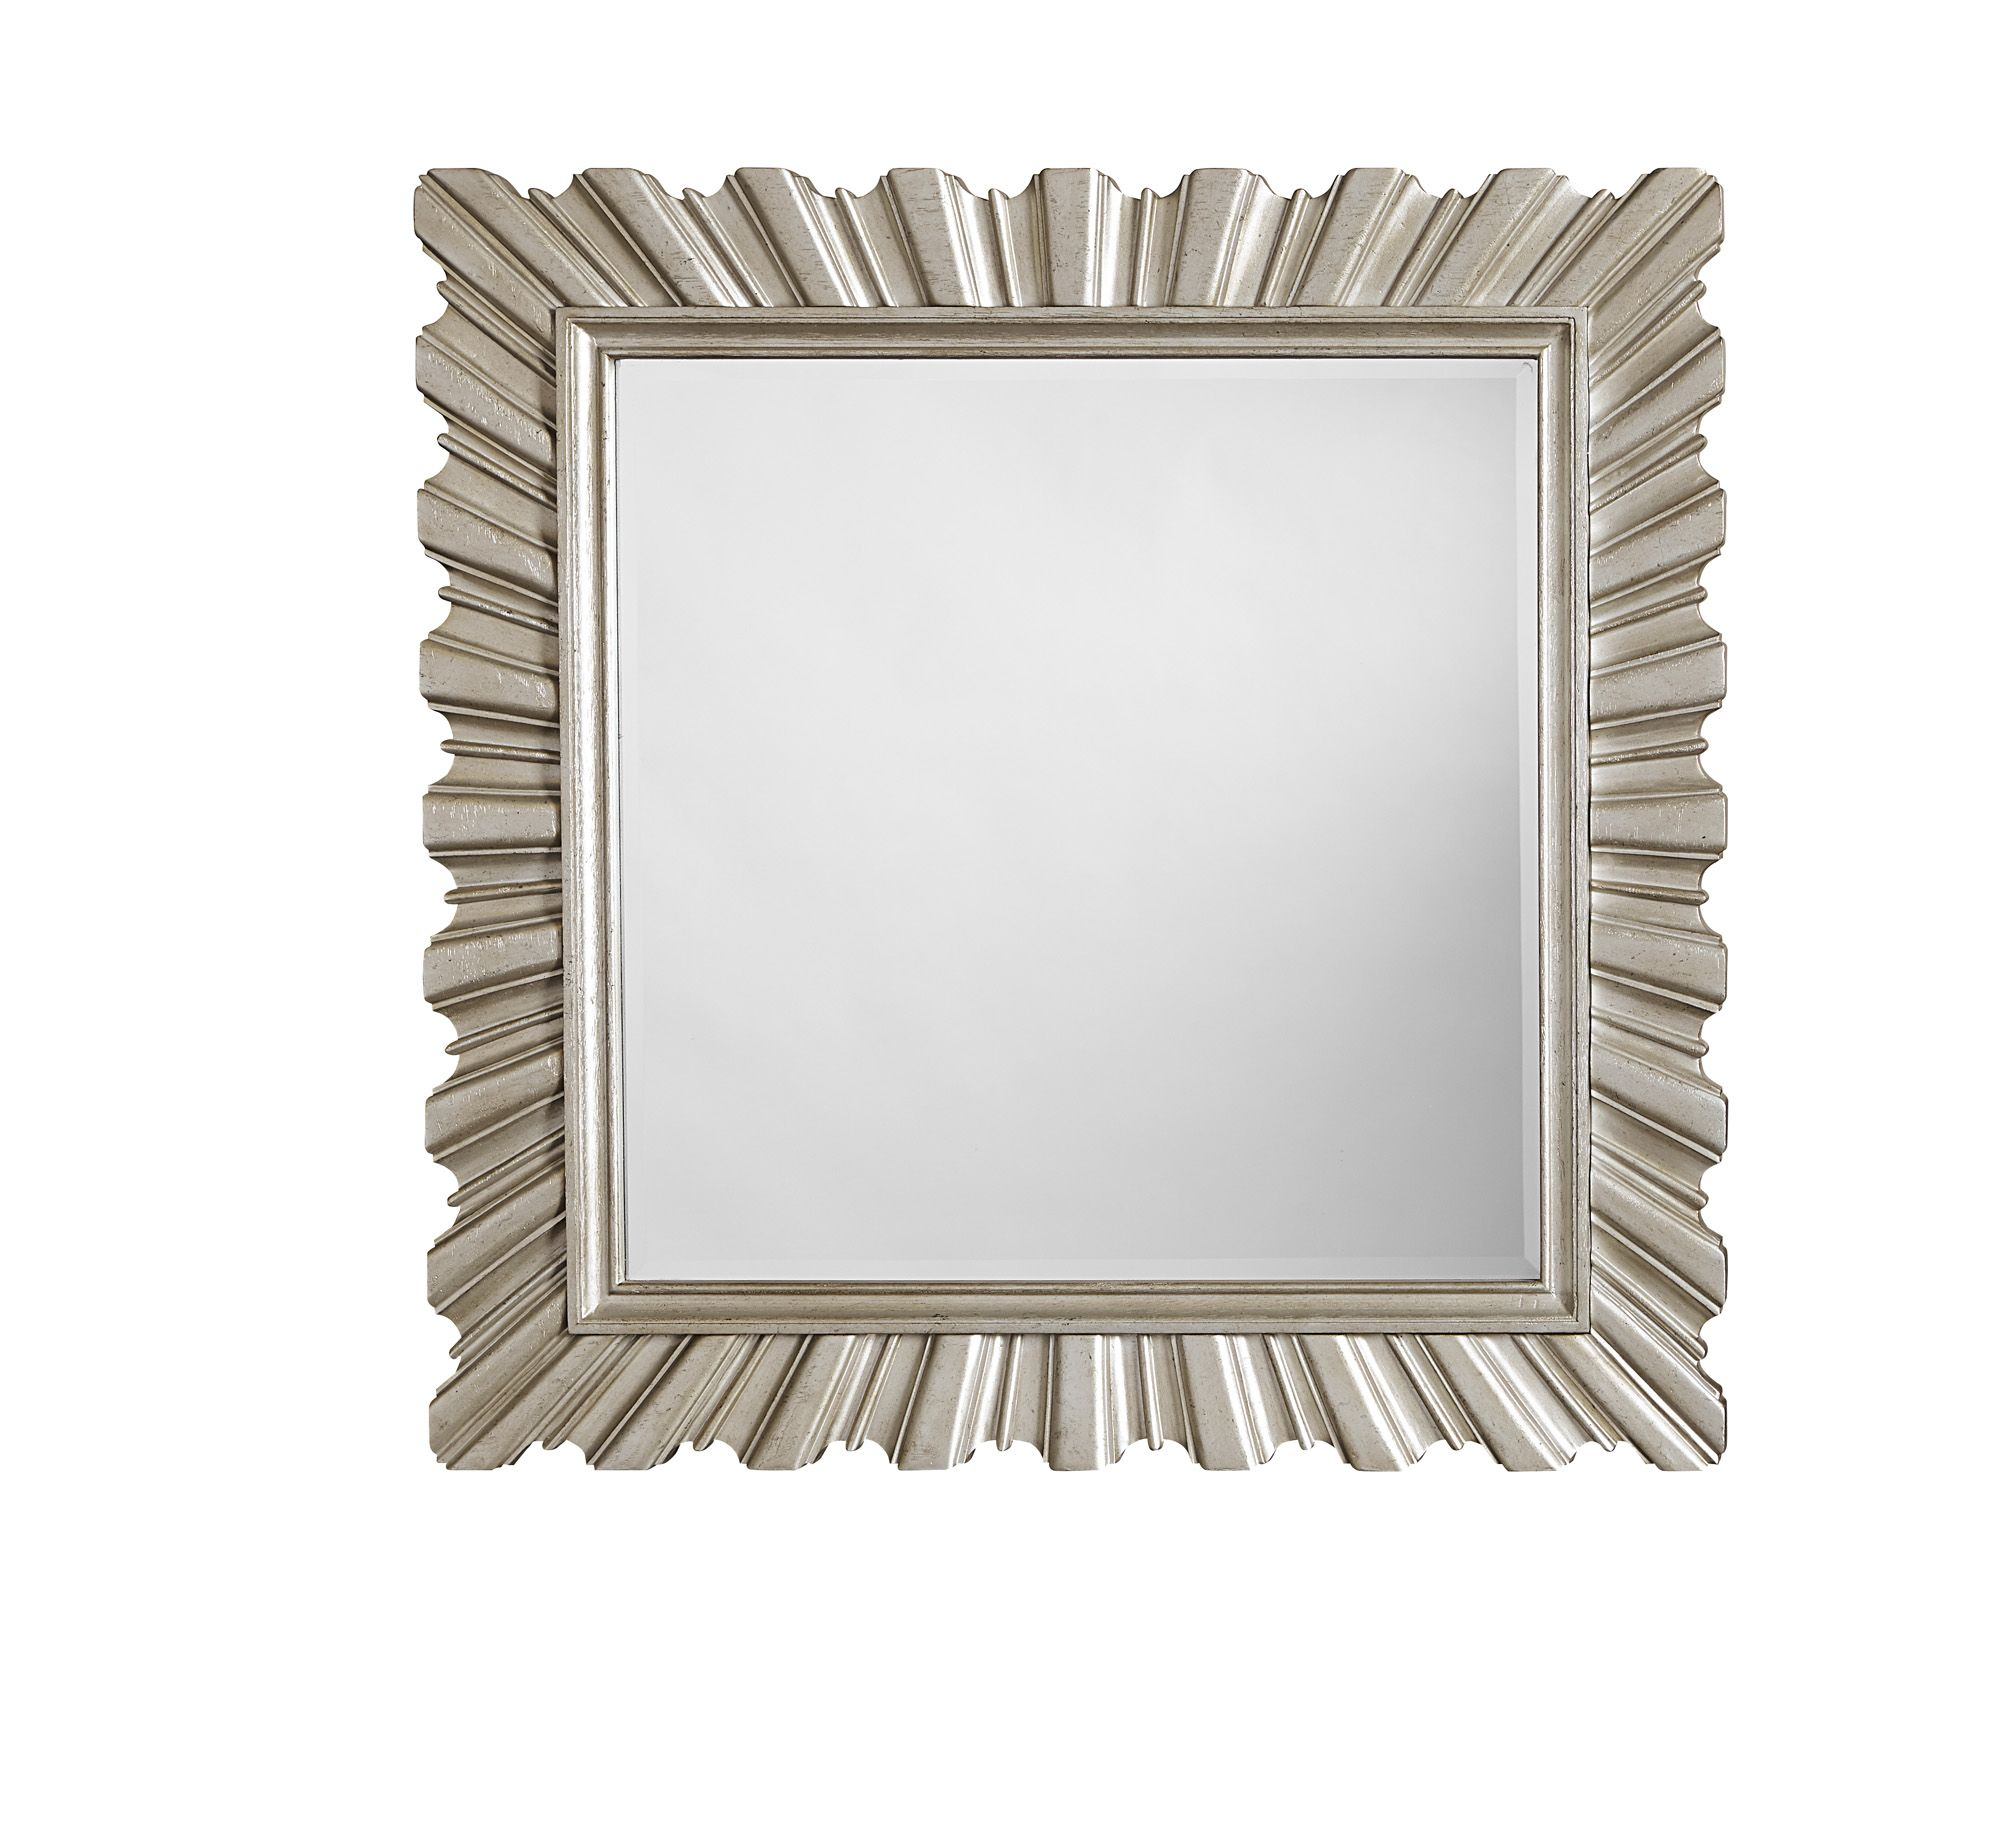 Starlite Accent Mirror | Accent Pieces | Dresser With Mirror Inside Medallion Accent Mirrors (Image 18 of 20)